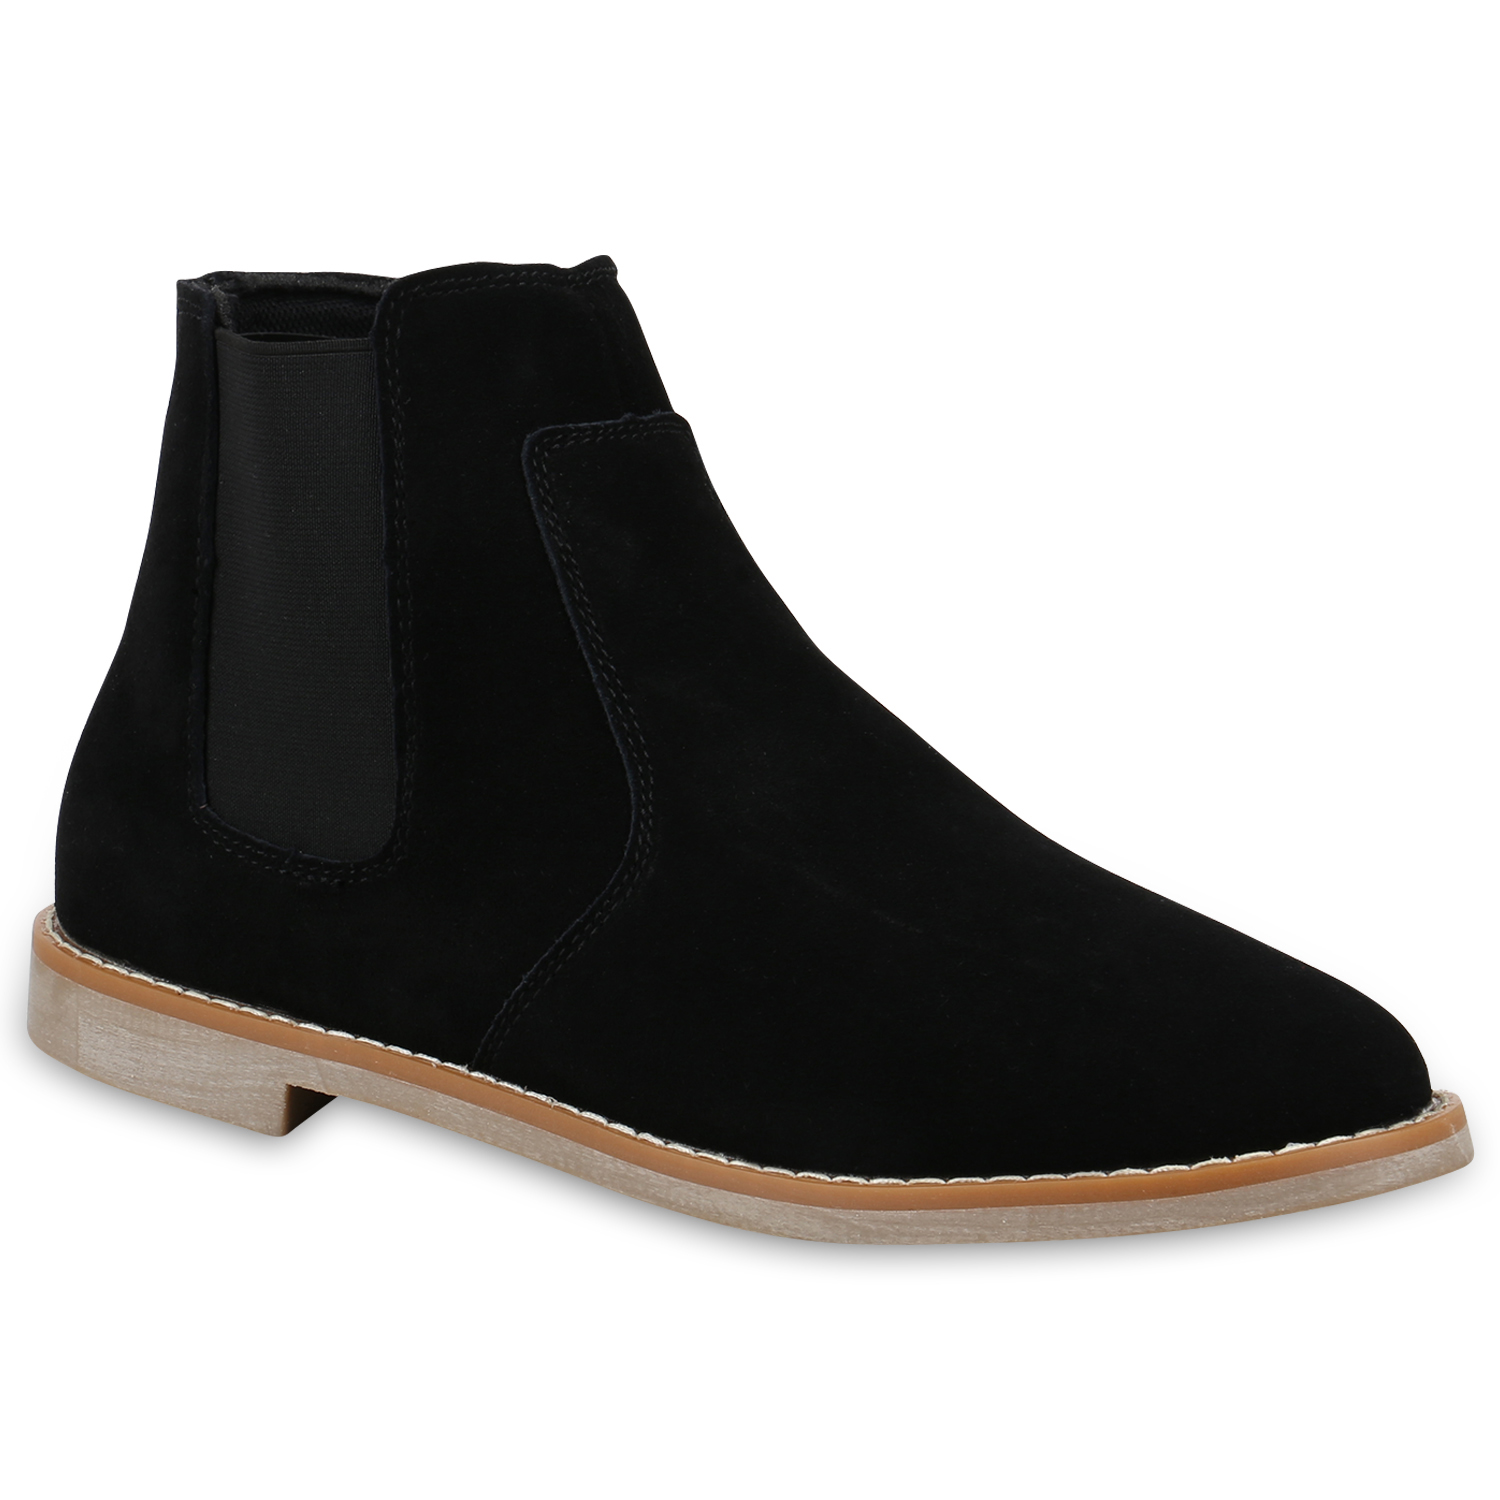 herren chelsea boots leder stiefeletten basic freizeit schuhe 820307 top ebay. Black Bedroom Furniture Sets. Home Design Ideas